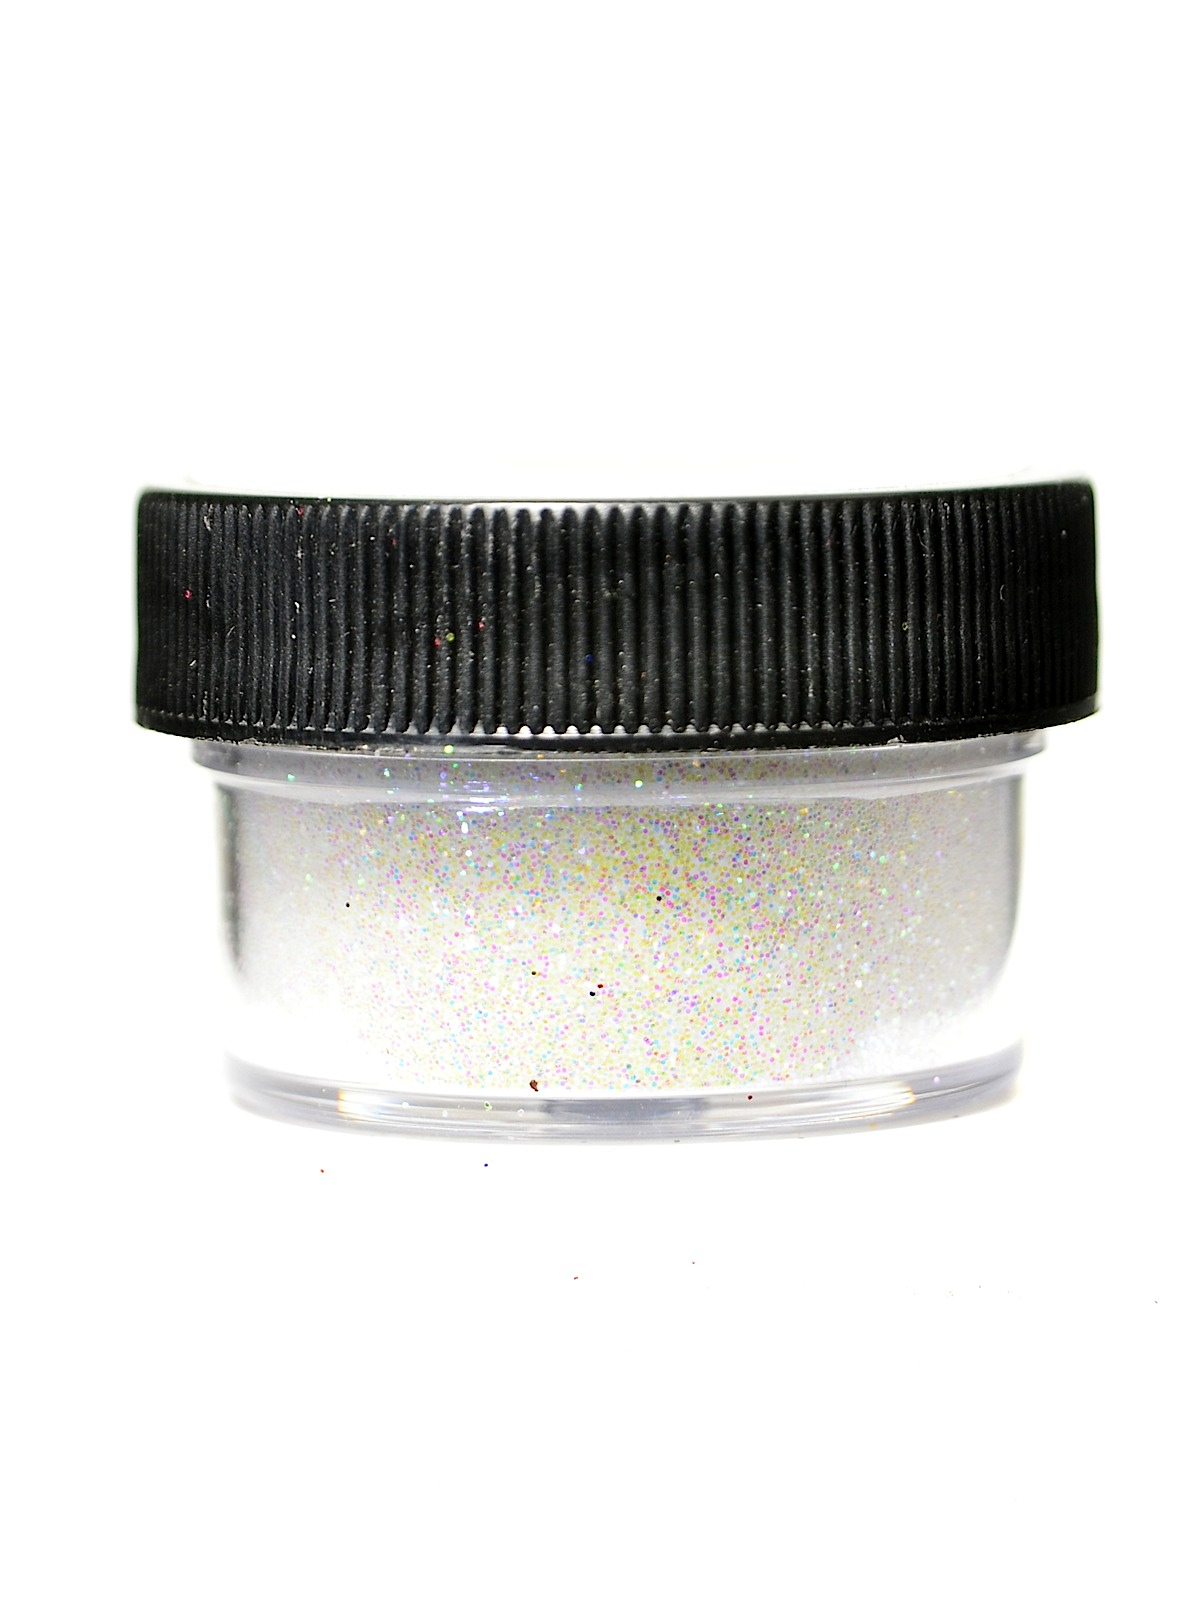 Ultrafine Transparent Glitter Crystal 1 2 Oz. Jar